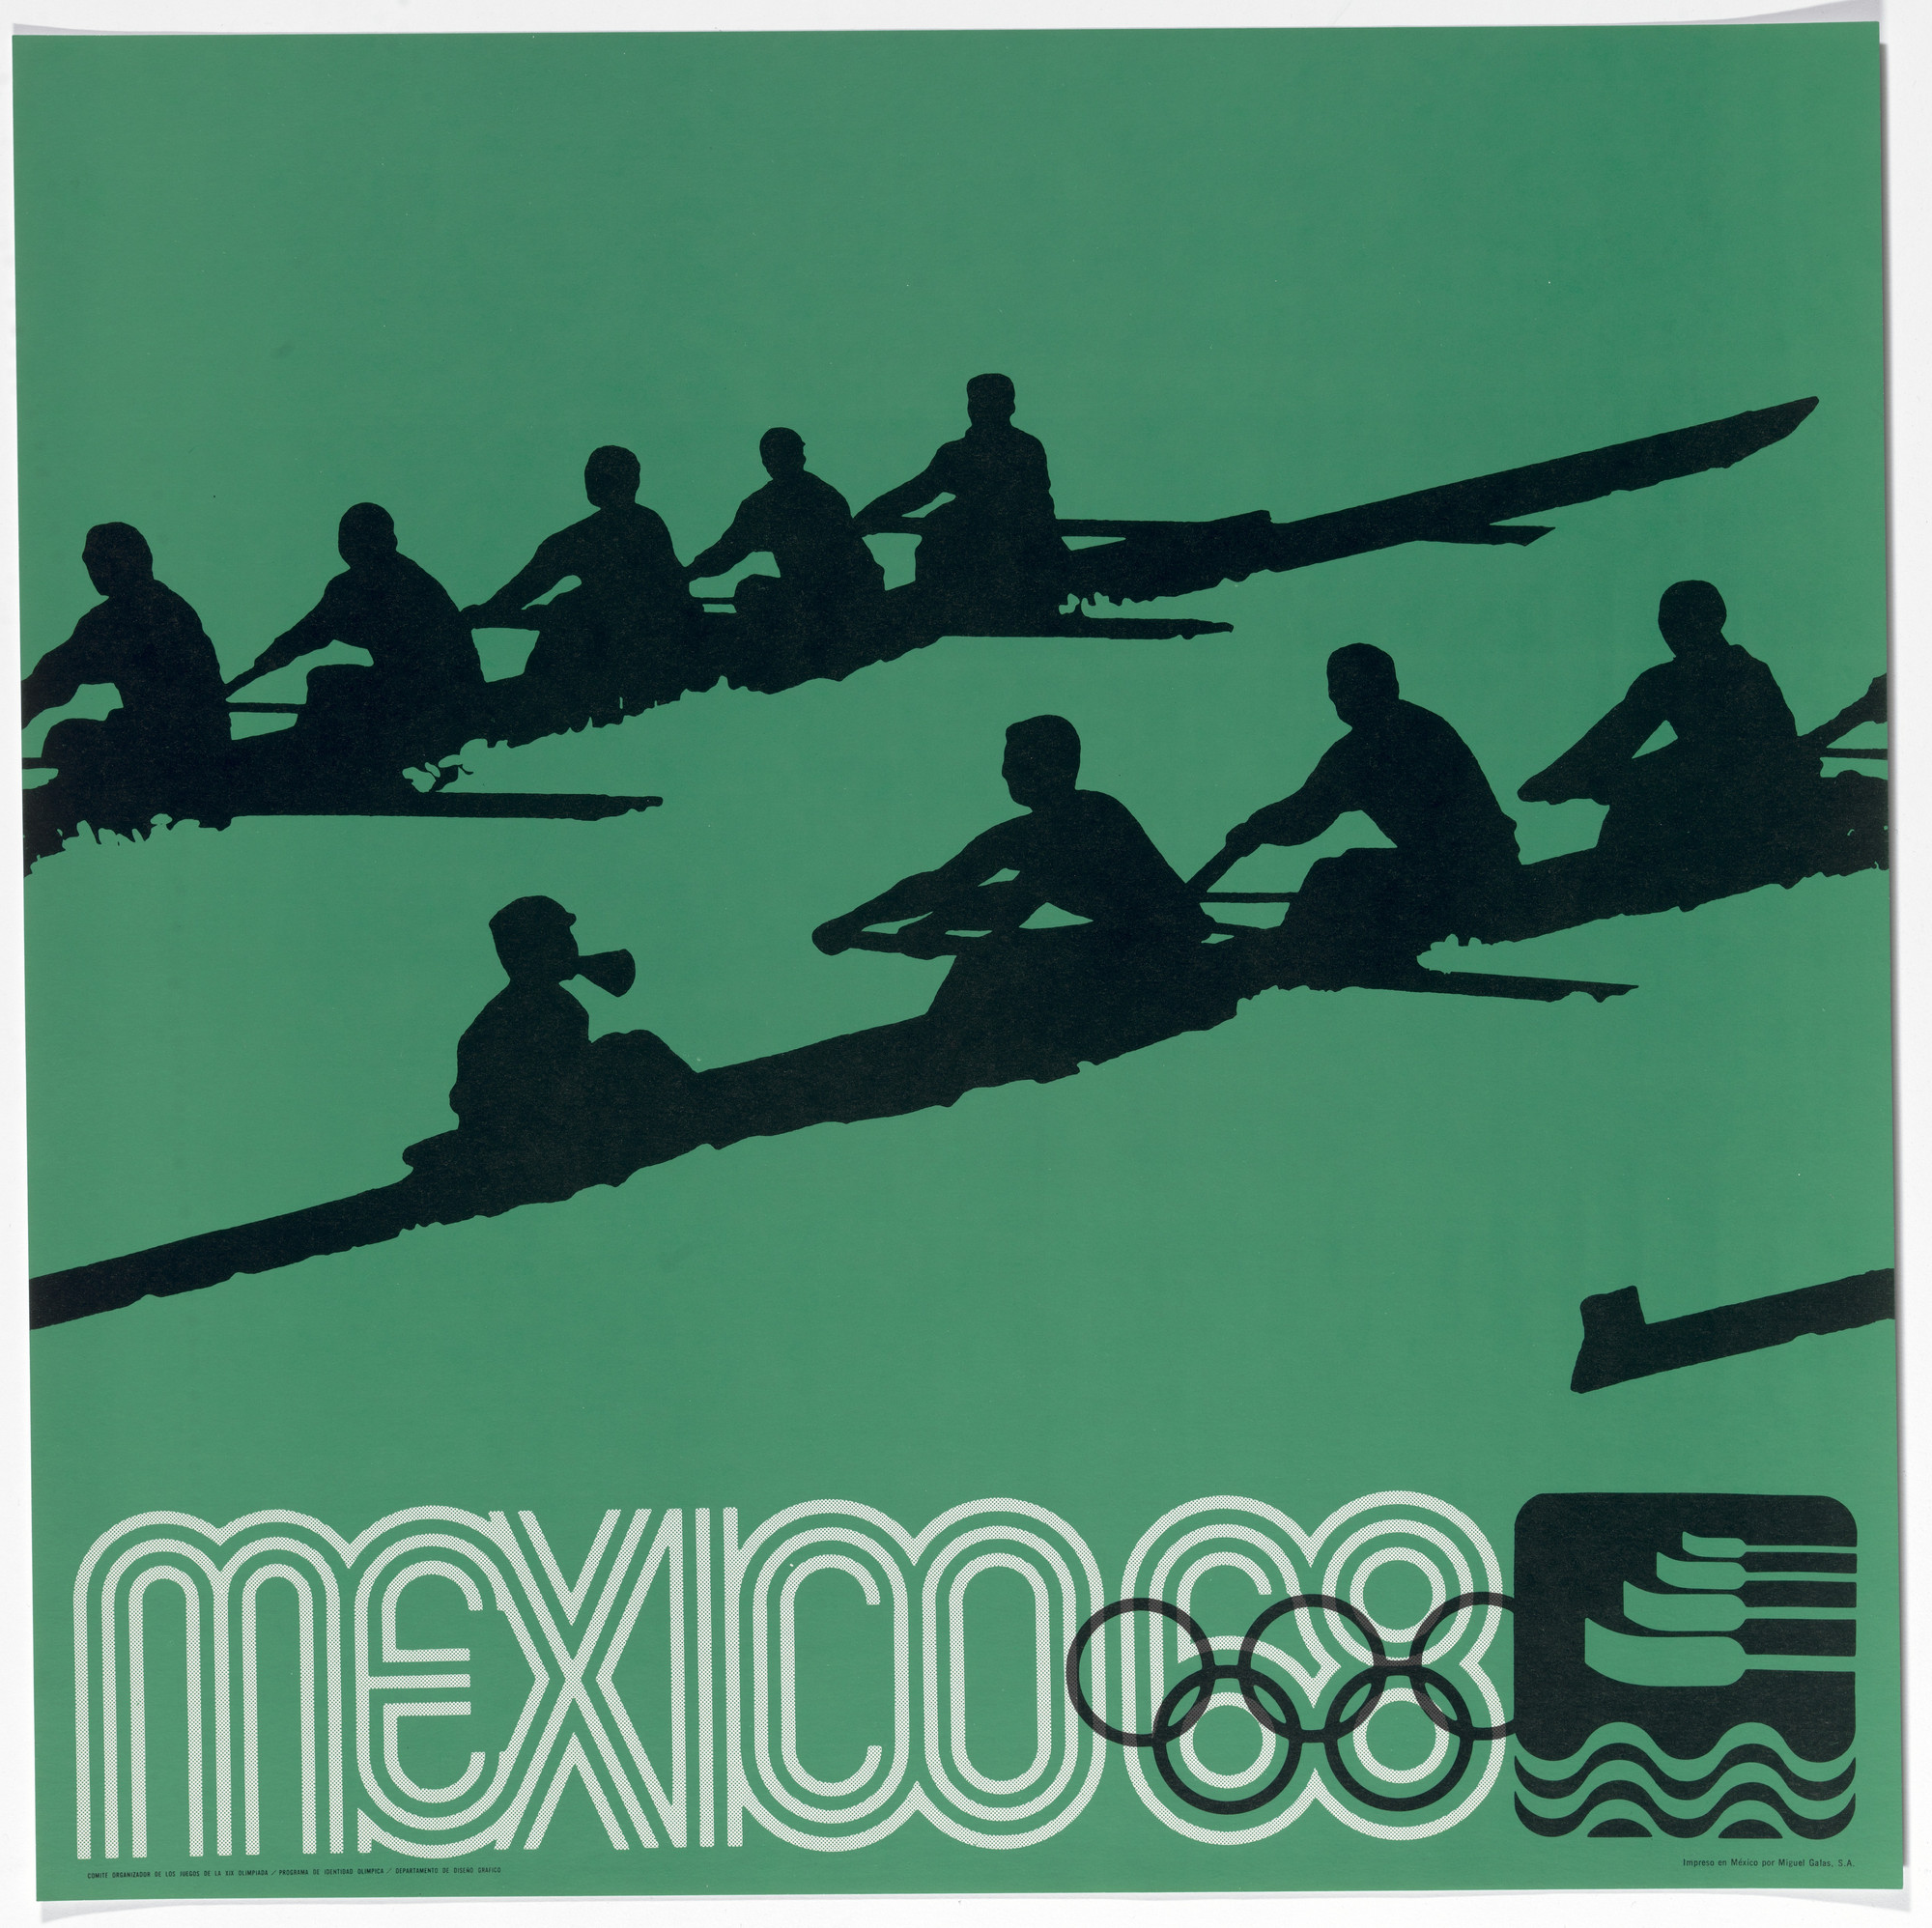 Lance Wyman, Department of Publications and Urban Design, Organizing Committee of the XIX Olympiad. Mexico City 1968 Olympics: Rowing. c. 1968